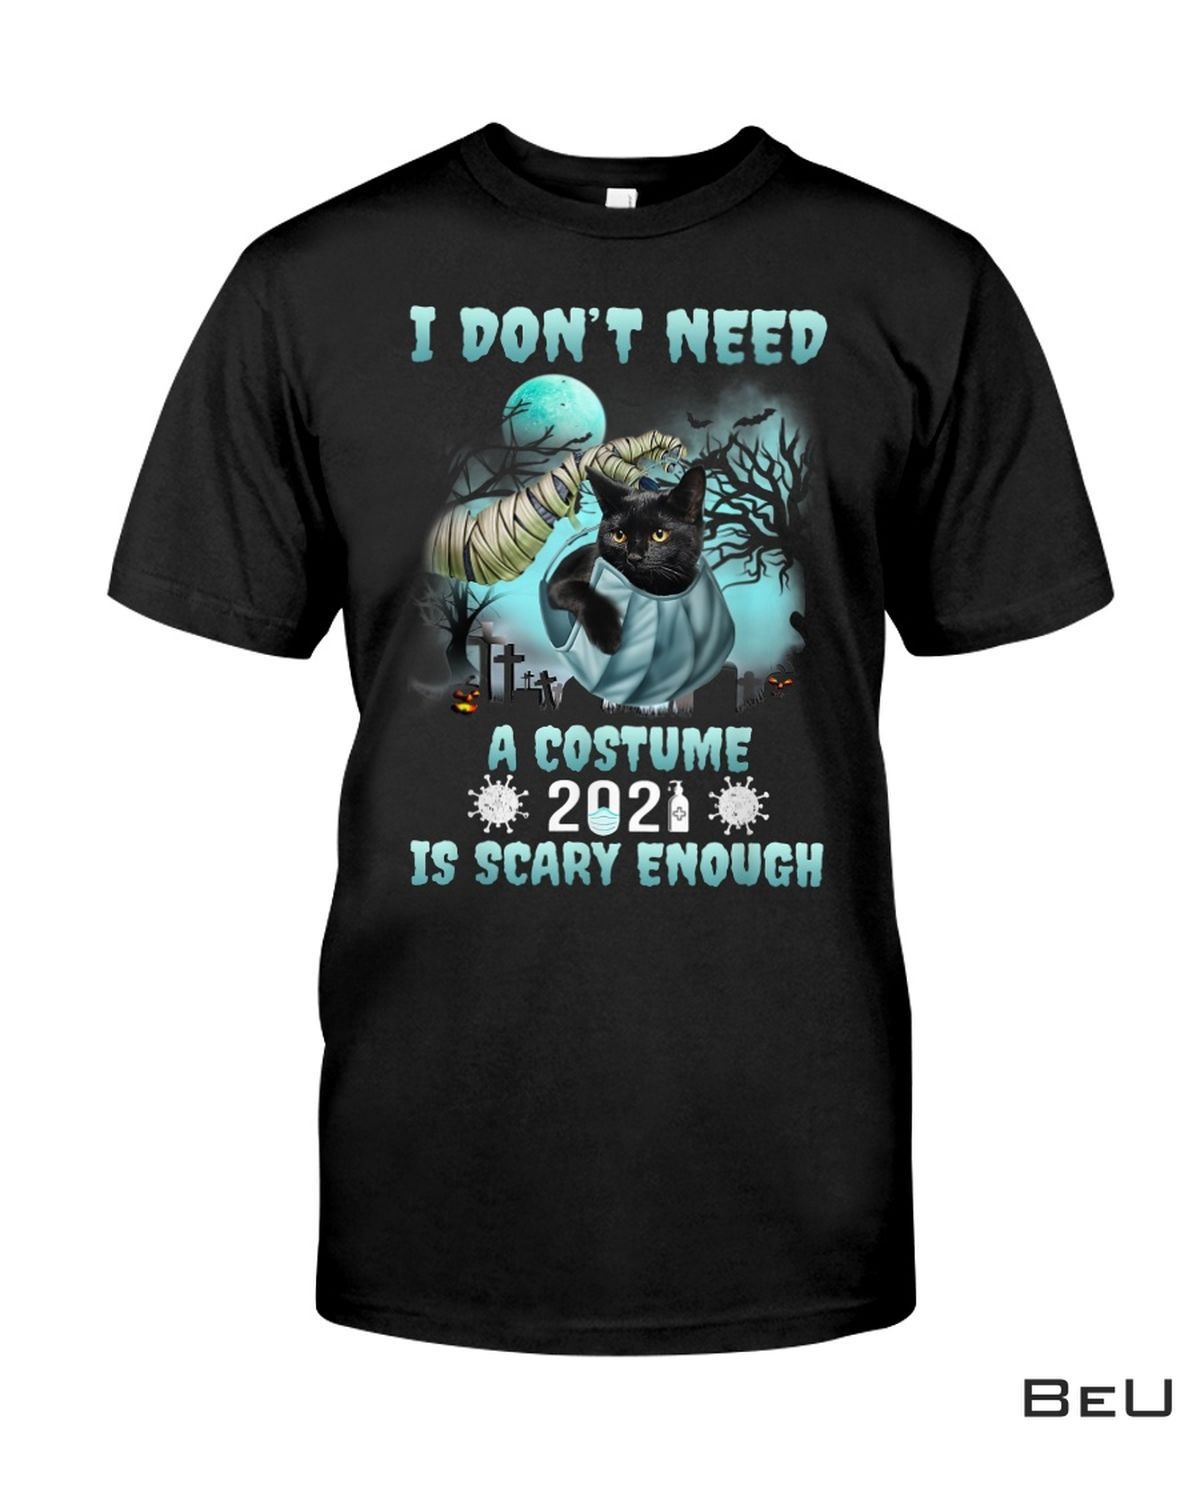 I Don't Need A Costume 2021 Is Scary Enough Shirt, hoodie, tank top